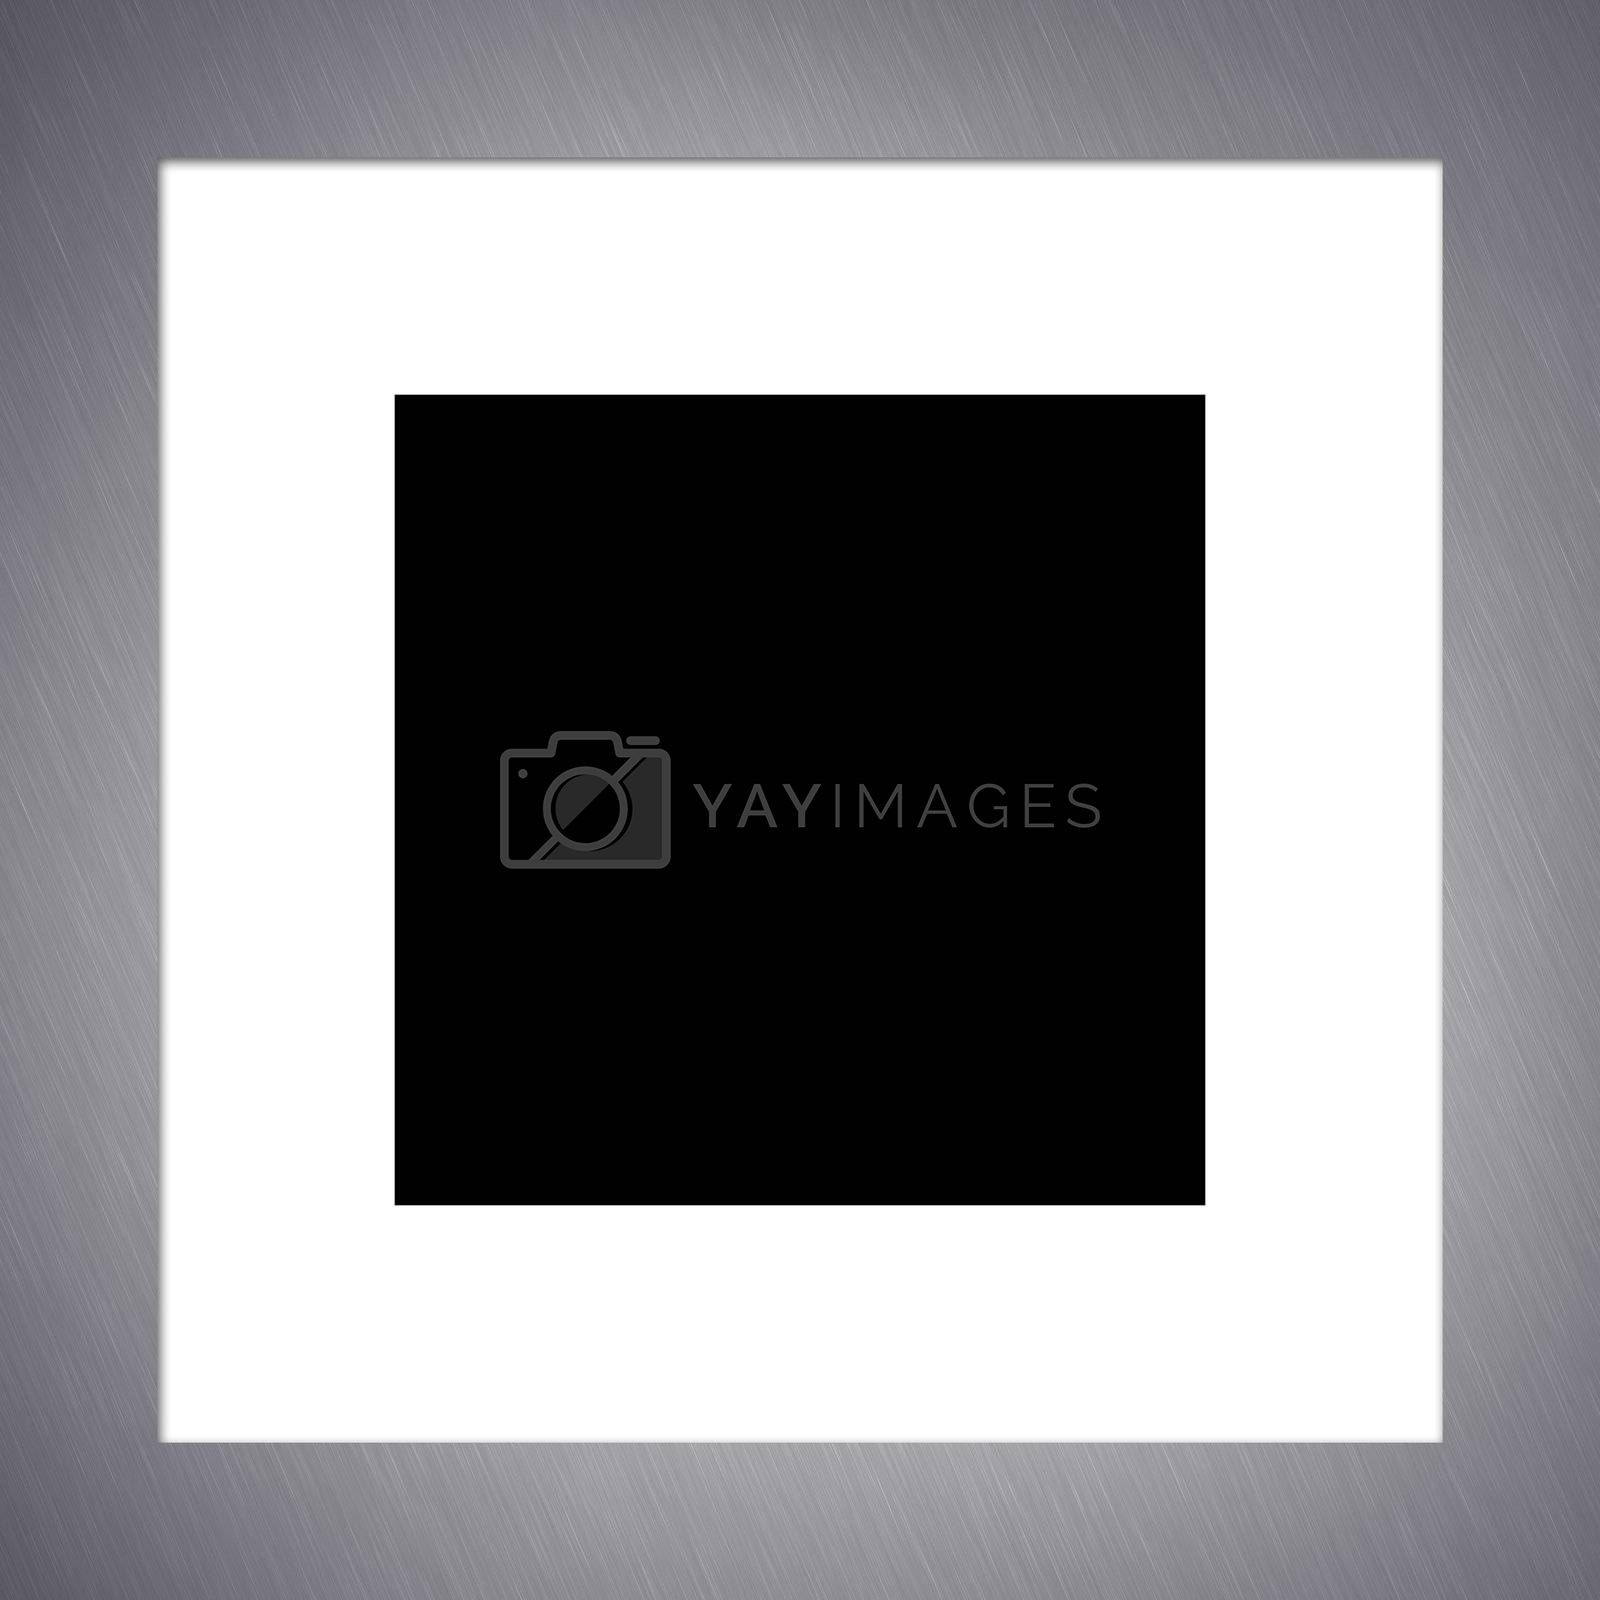 A brushed aluminum photo frame border.  Includes clipping path.